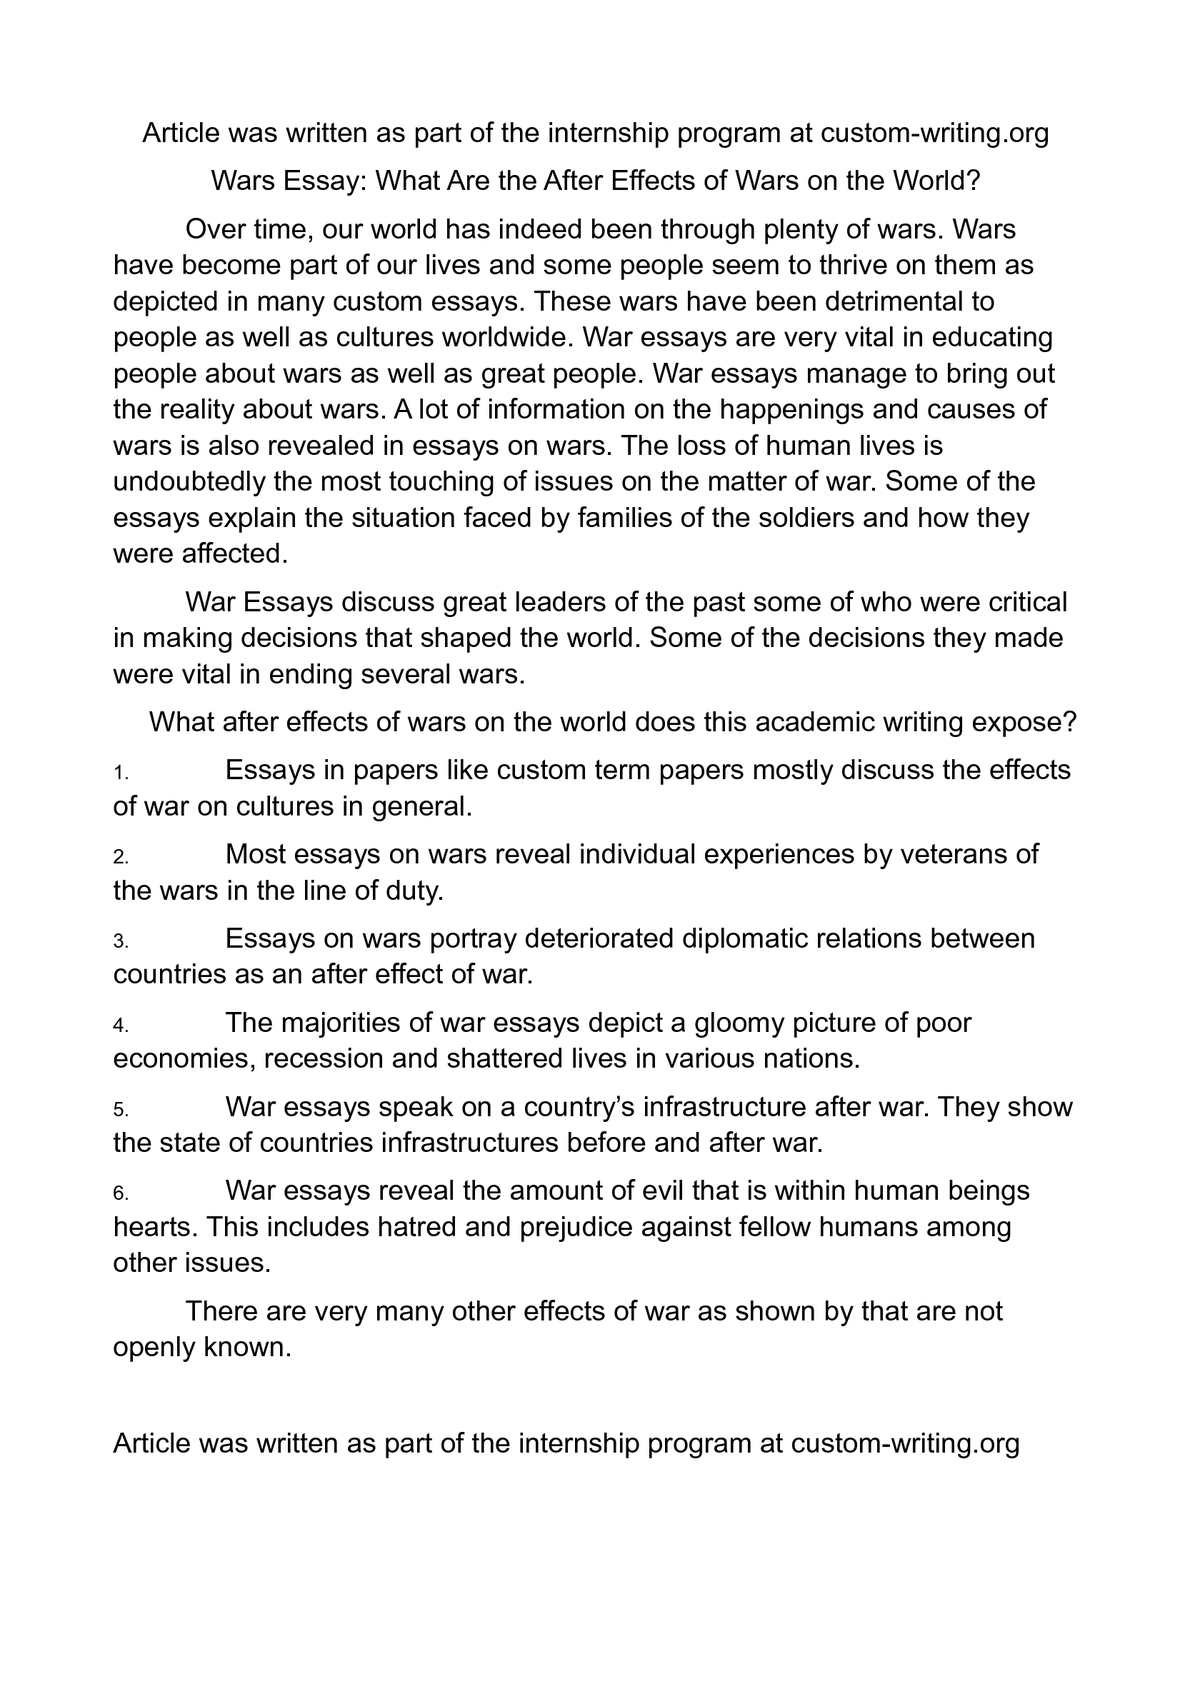 calam eacute o wars essay what are the after effects of wars on the world